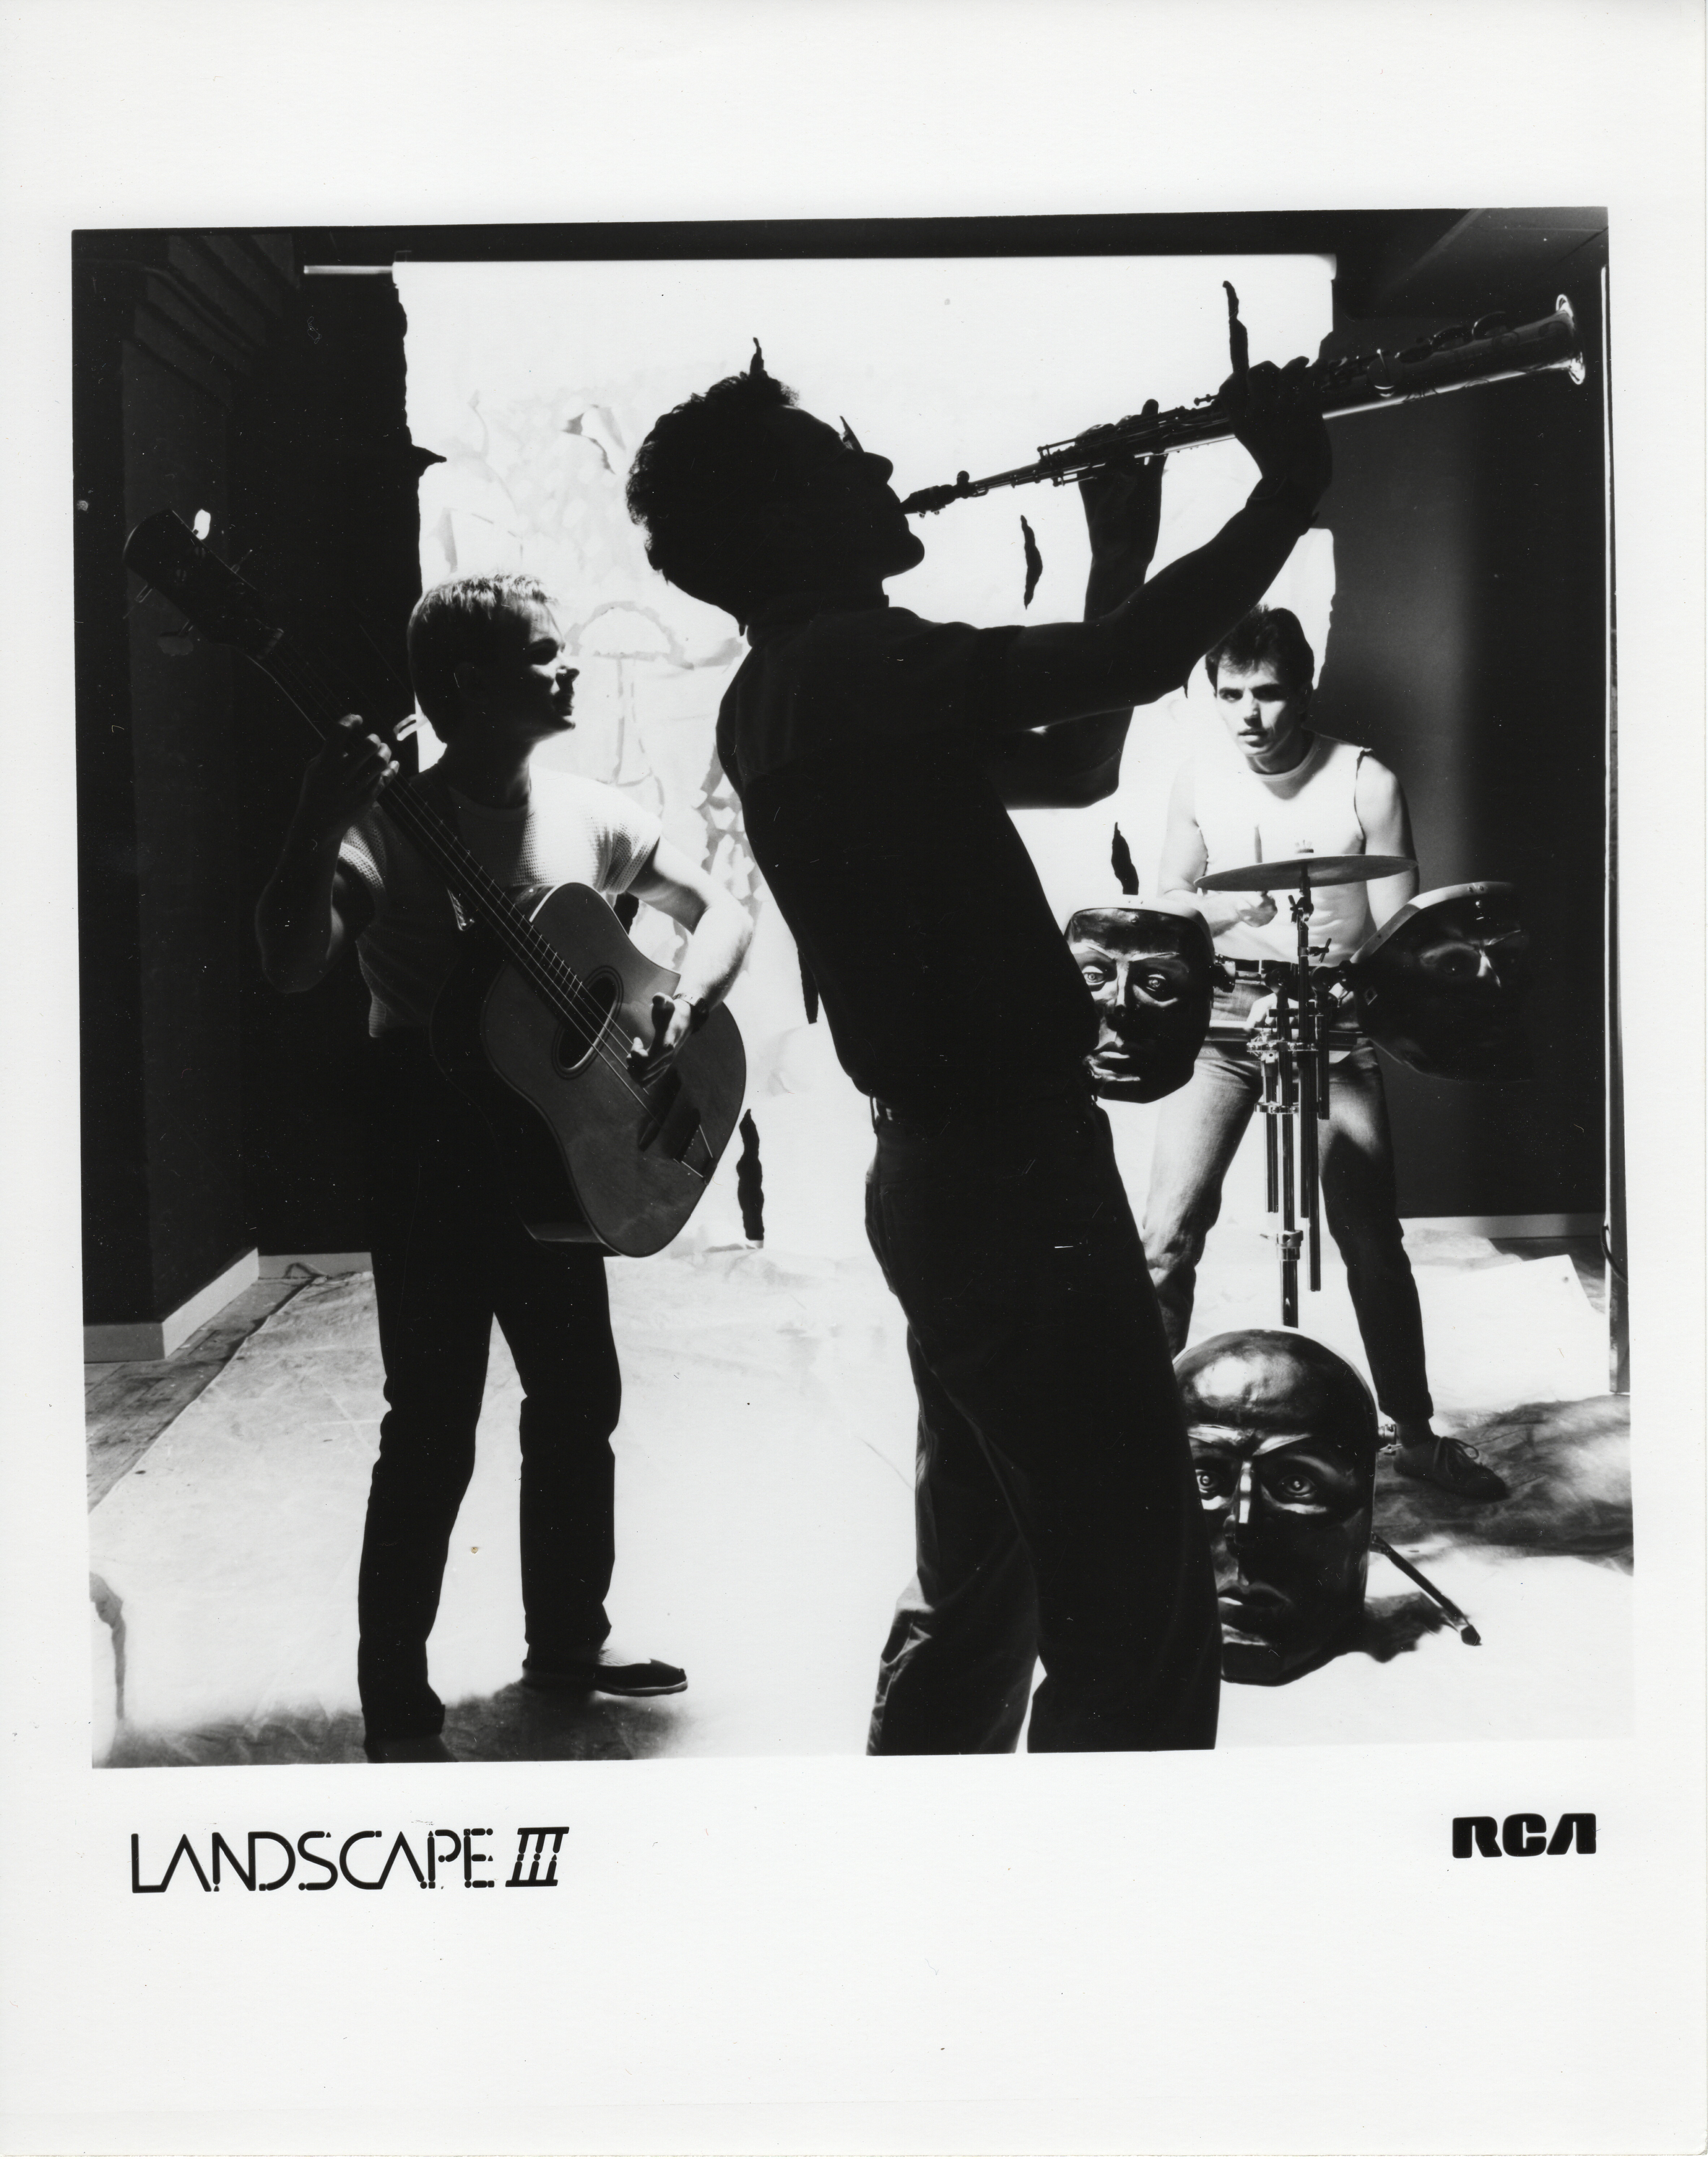 An RCA Records promo shot of Landscape with Burgess playing an SDSV prototype.